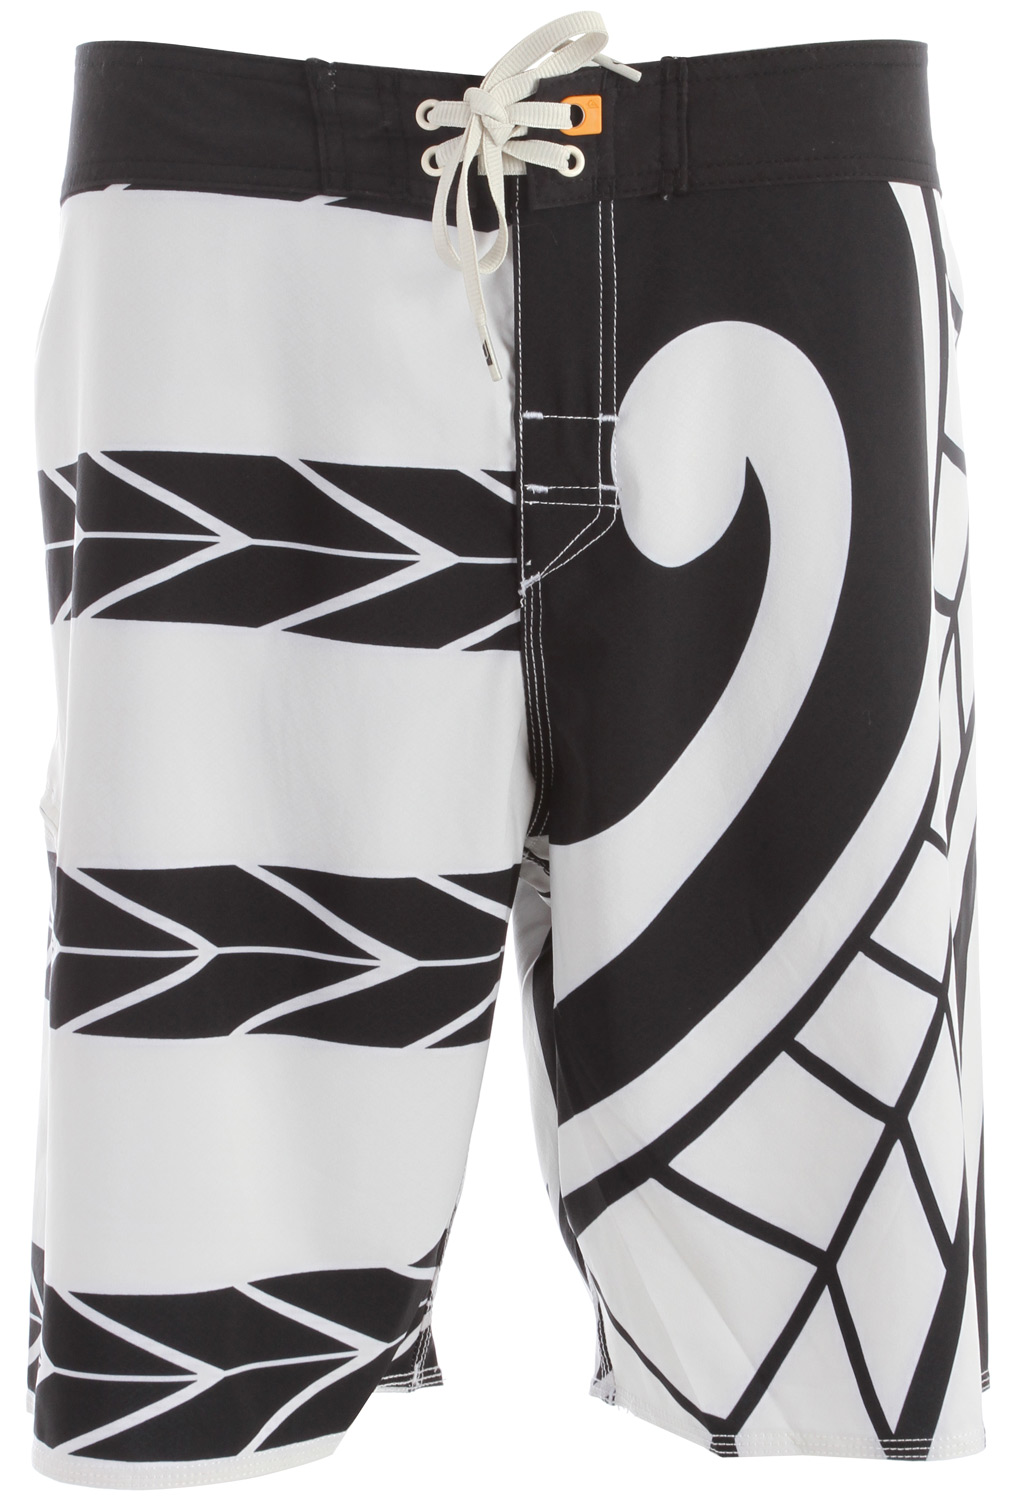 "Surf Key Features of the Quiksilver Brudda Boardshorts: Raimana's signature engineered printed 4-way stretch diamond dobby boardshort 94% recycled polyester, 6% spandex 4-way stretch diamond dobby 20"" outseam - $65.00"